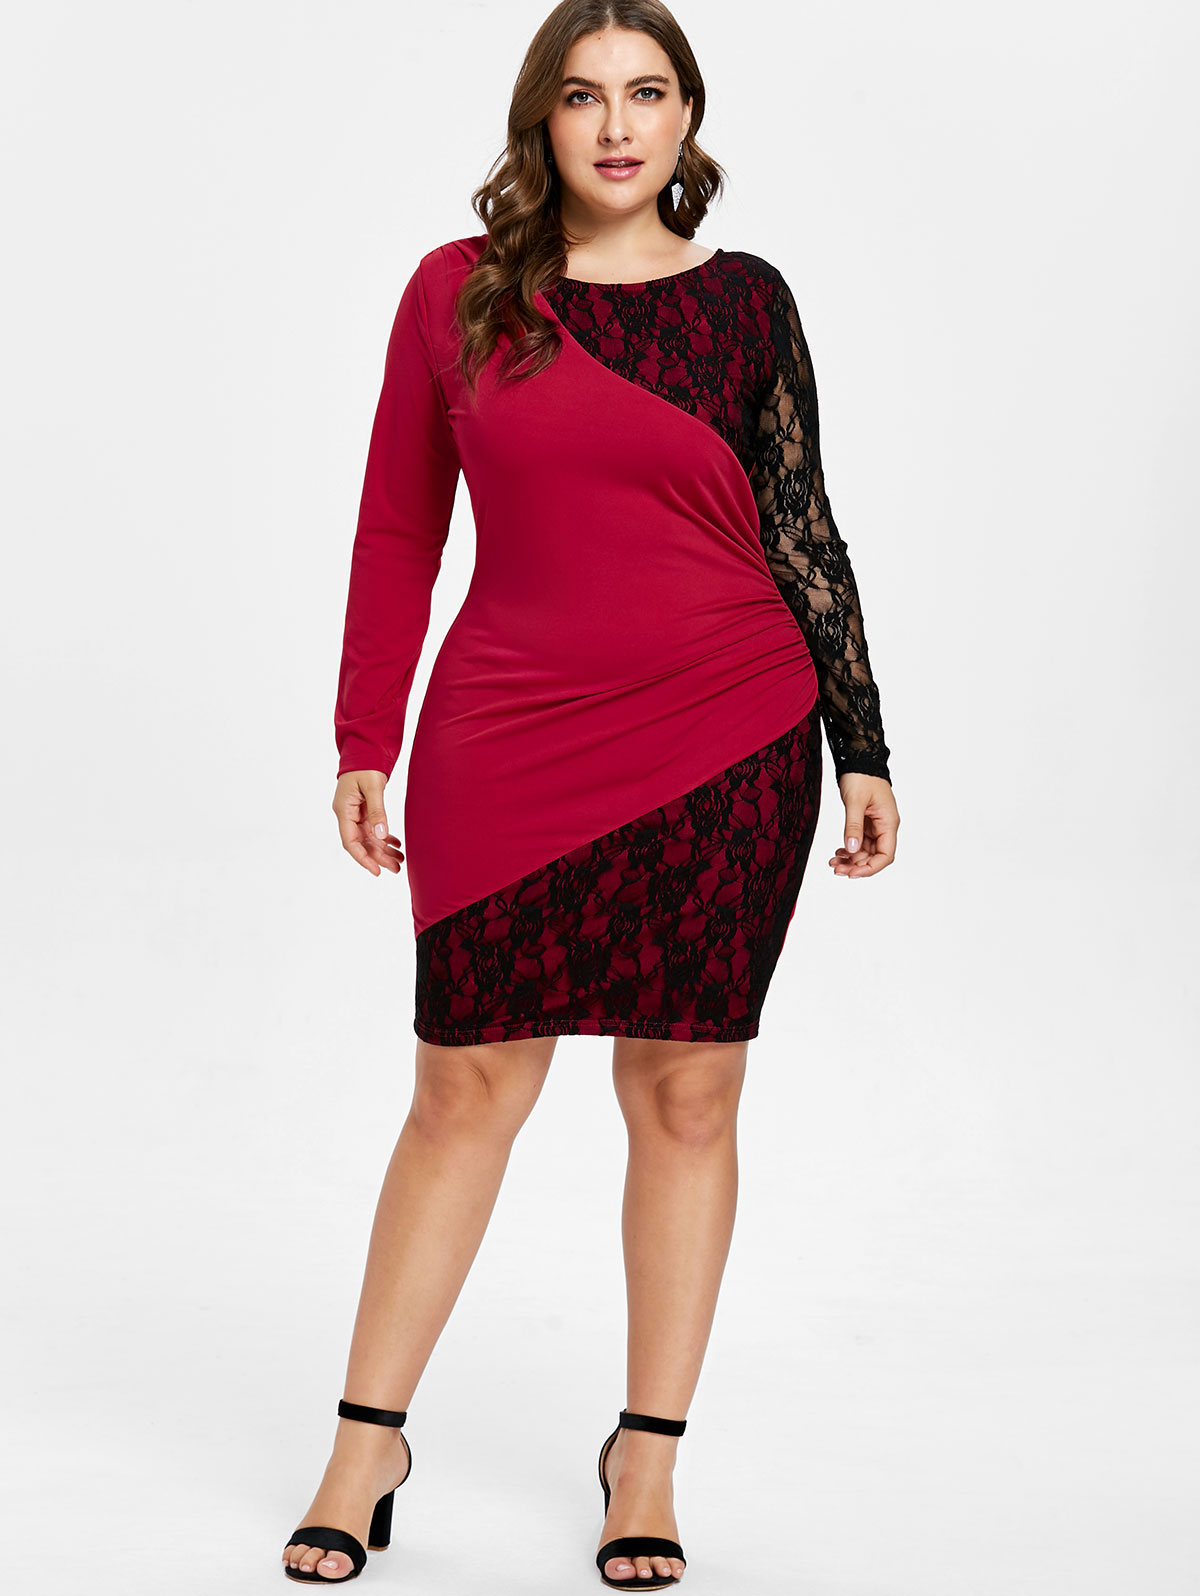 Wipalo Lace Panel Plus Size Black Red Patchwork Bodycon Dress Elegant Knee  Length Party Dress Spring Fall OL Dress Vestidos 5XL-in Dresses from  Women s ... c7ae0b74750e